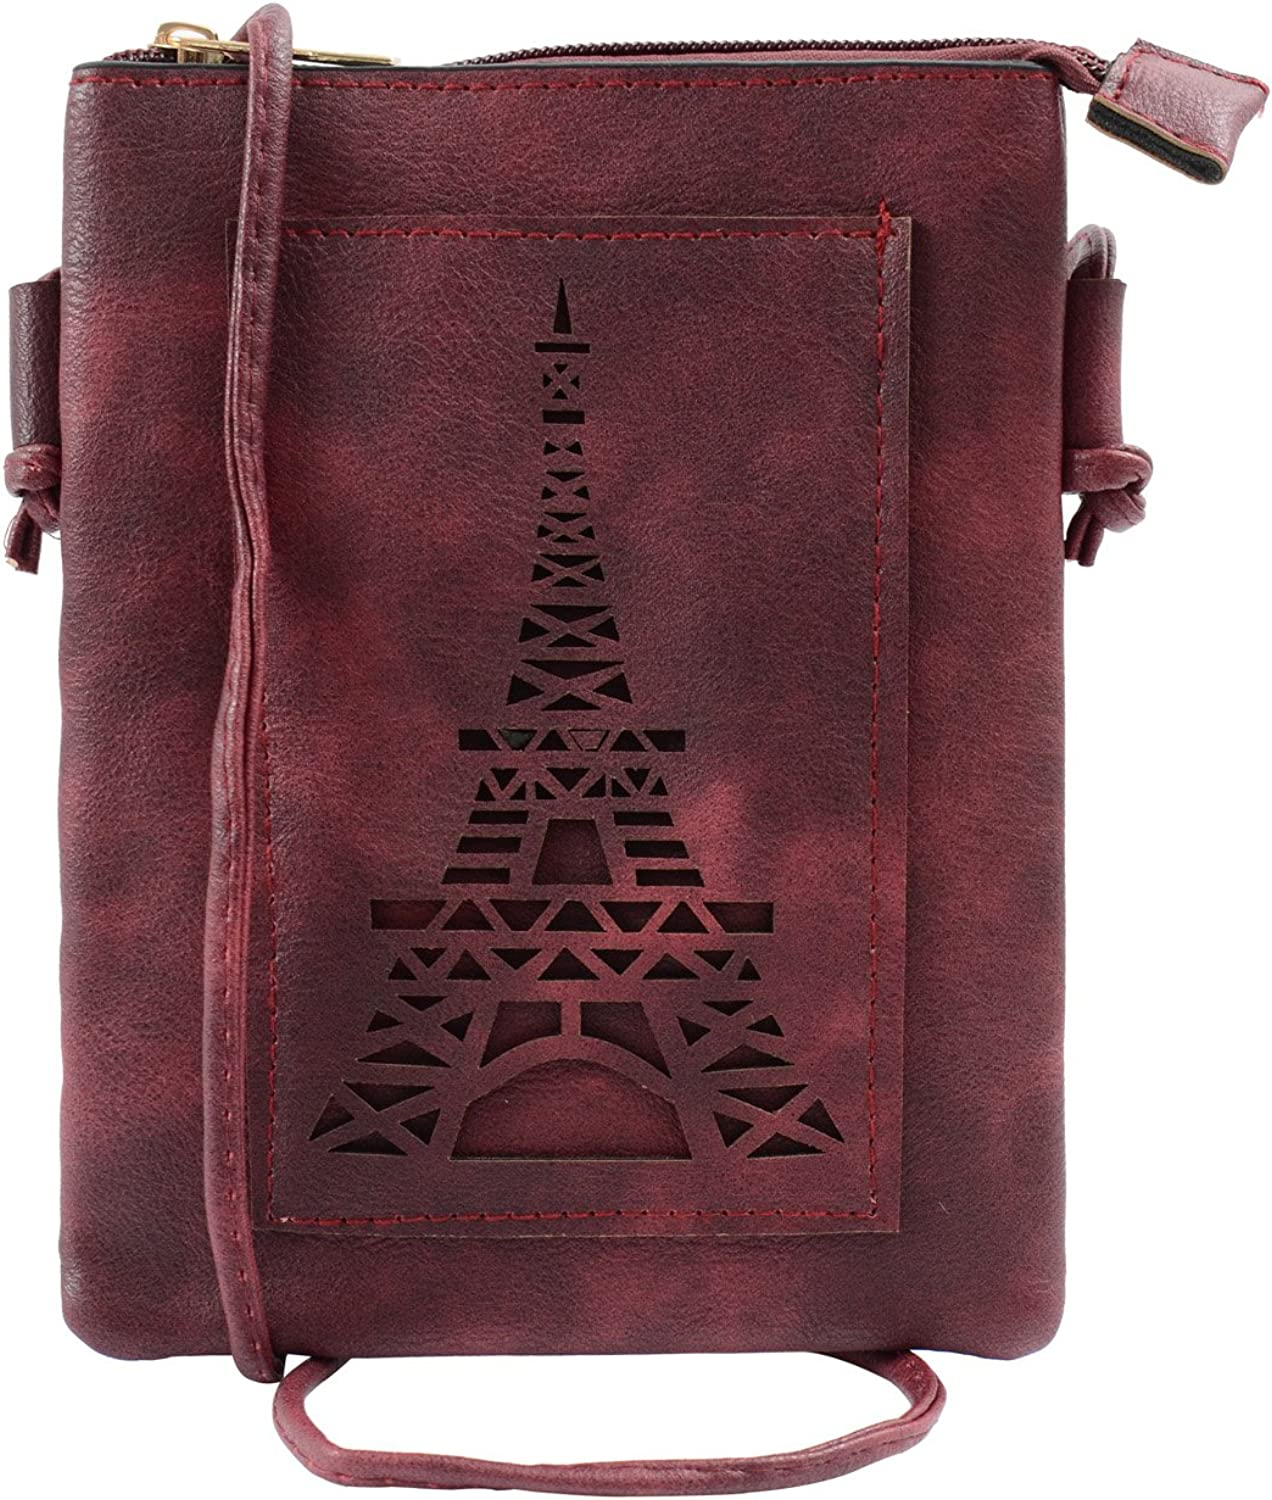 Pulama Cellphone crossbody Hollow Eiffel Tower Unique Pouch